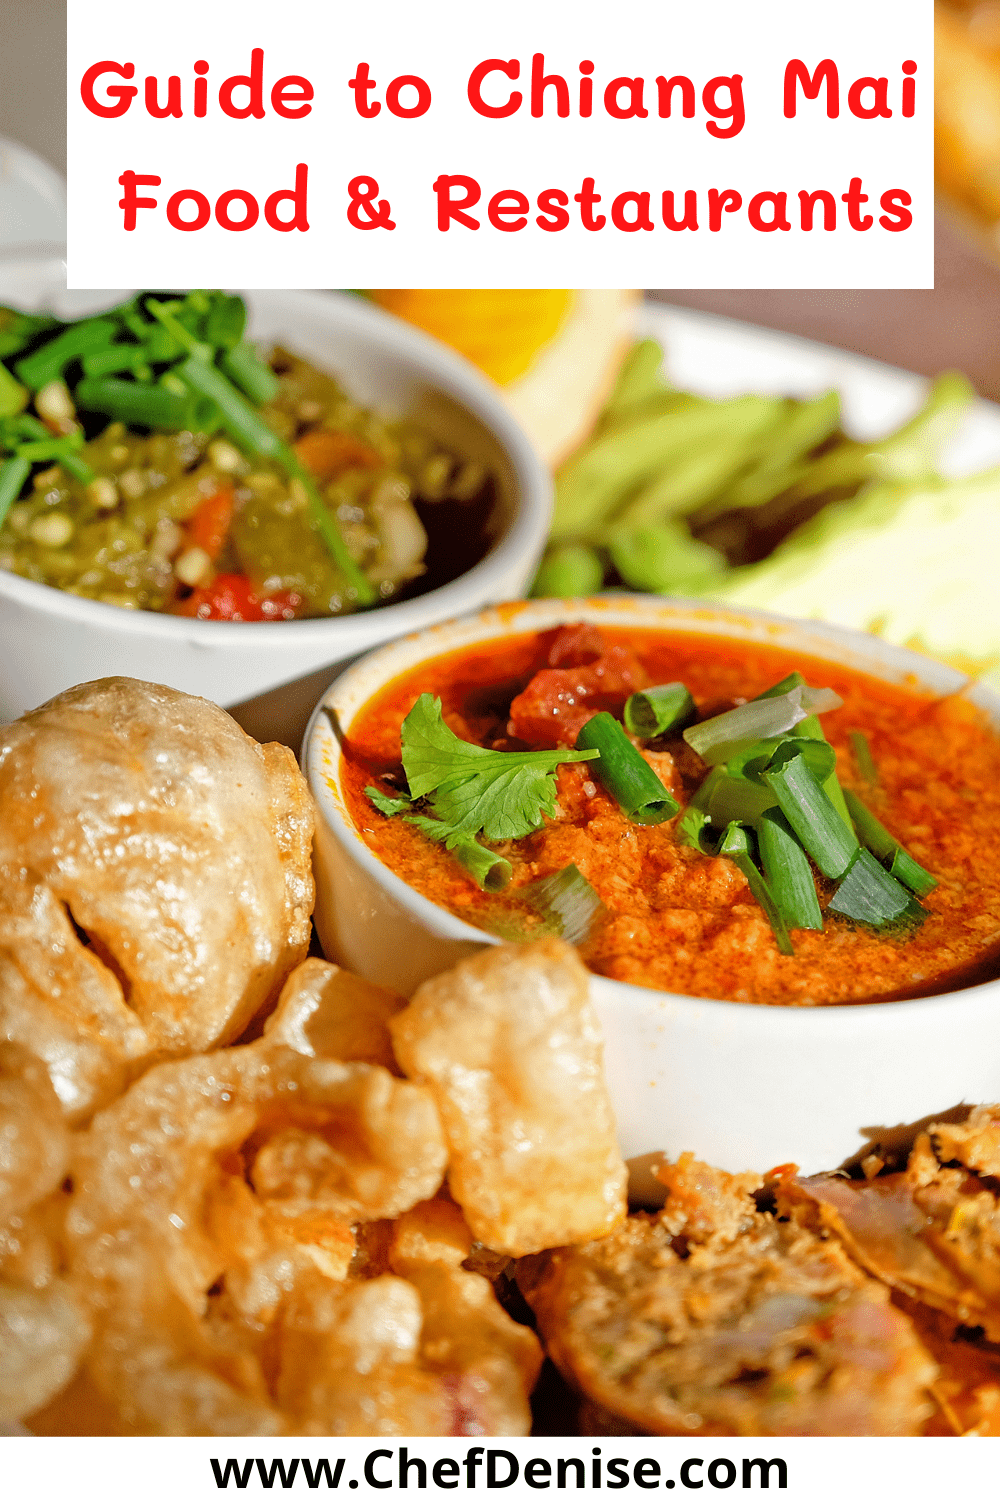 Pin for Chiang Mai food guide